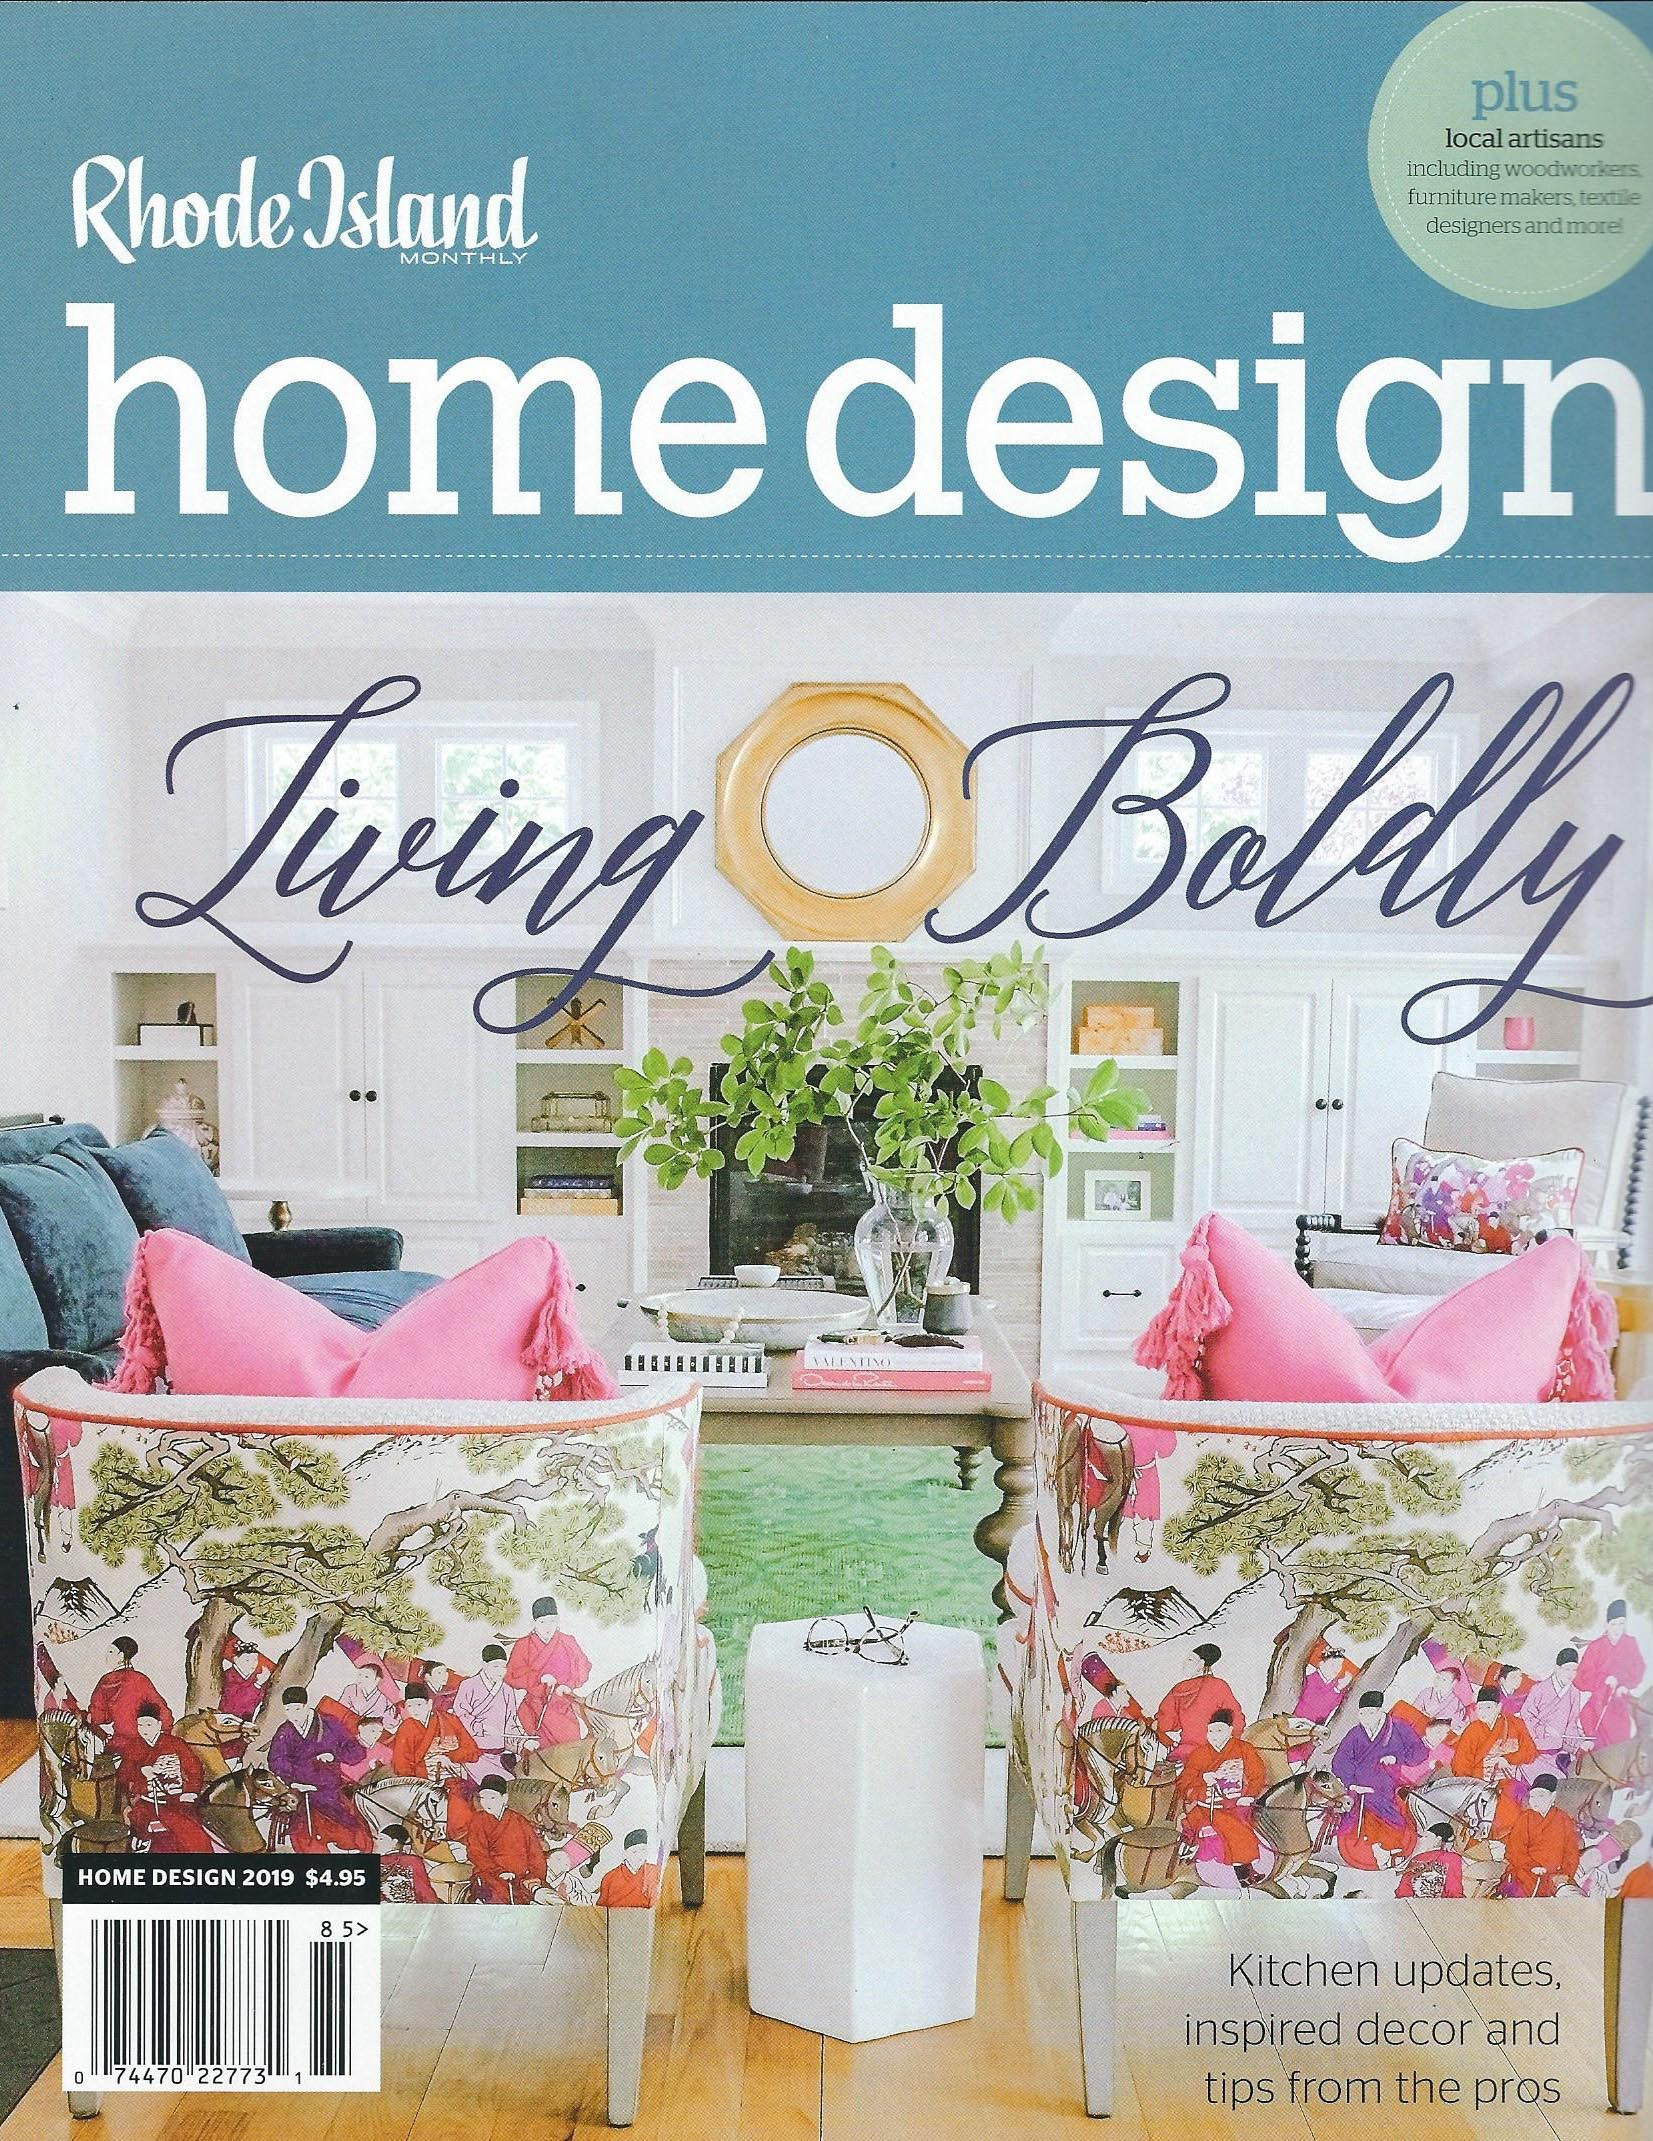 "rhode-island-home-design-2019"">RHODE ISLAND HOME DESIGN 